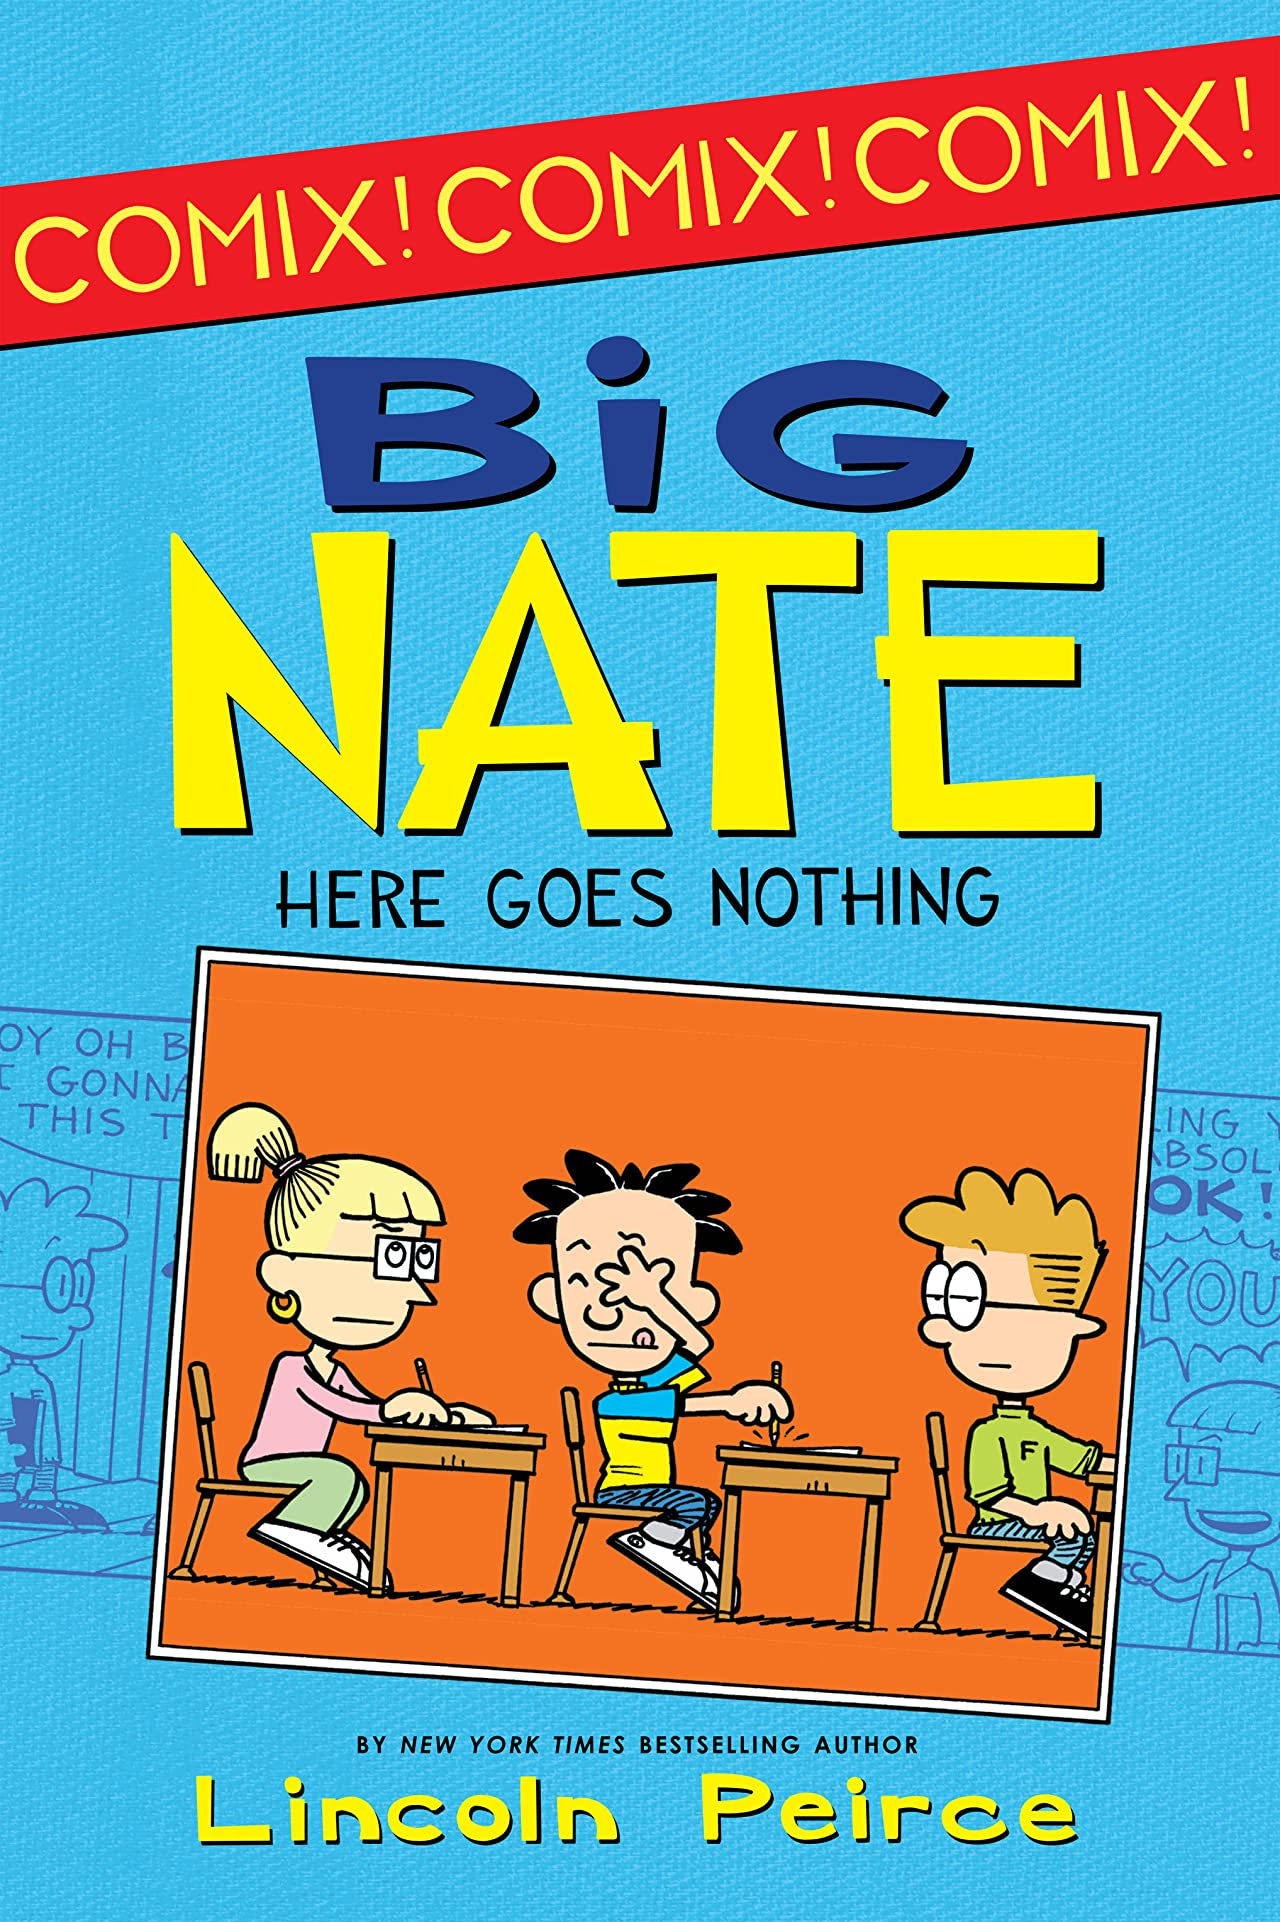 Big Nate Comix Vol. 2: Here Goes Nothing